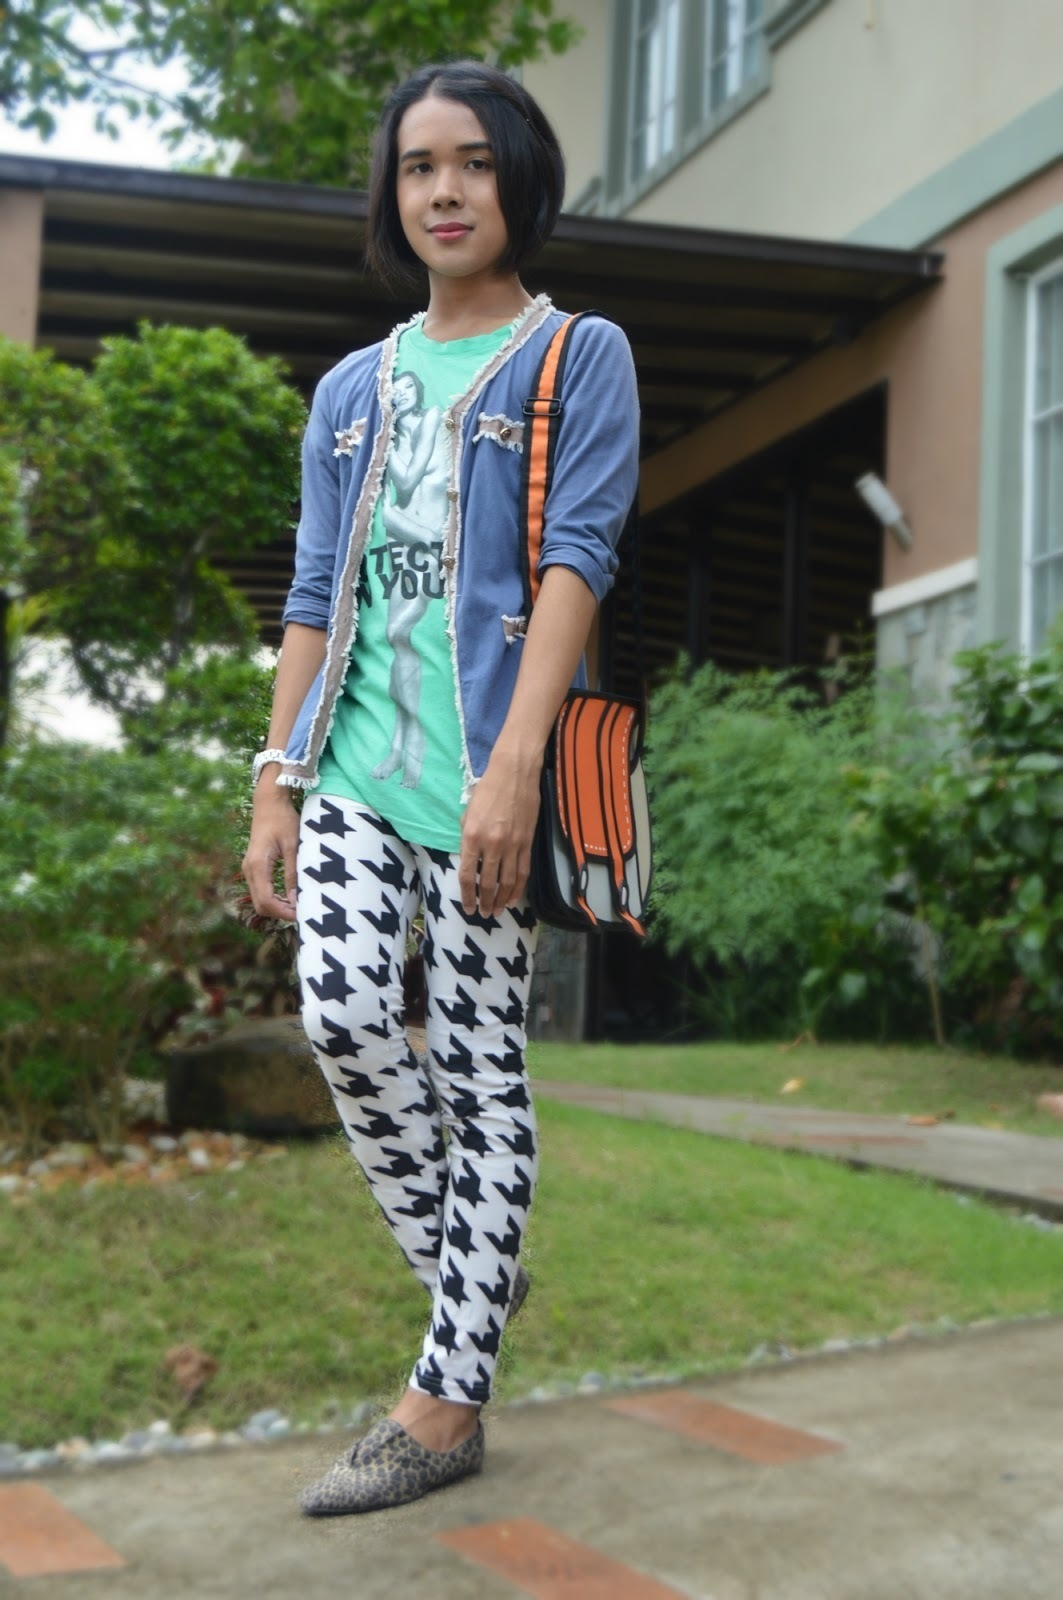 How to Wear White and Black Leggings (6 looks)   Women's Fashion